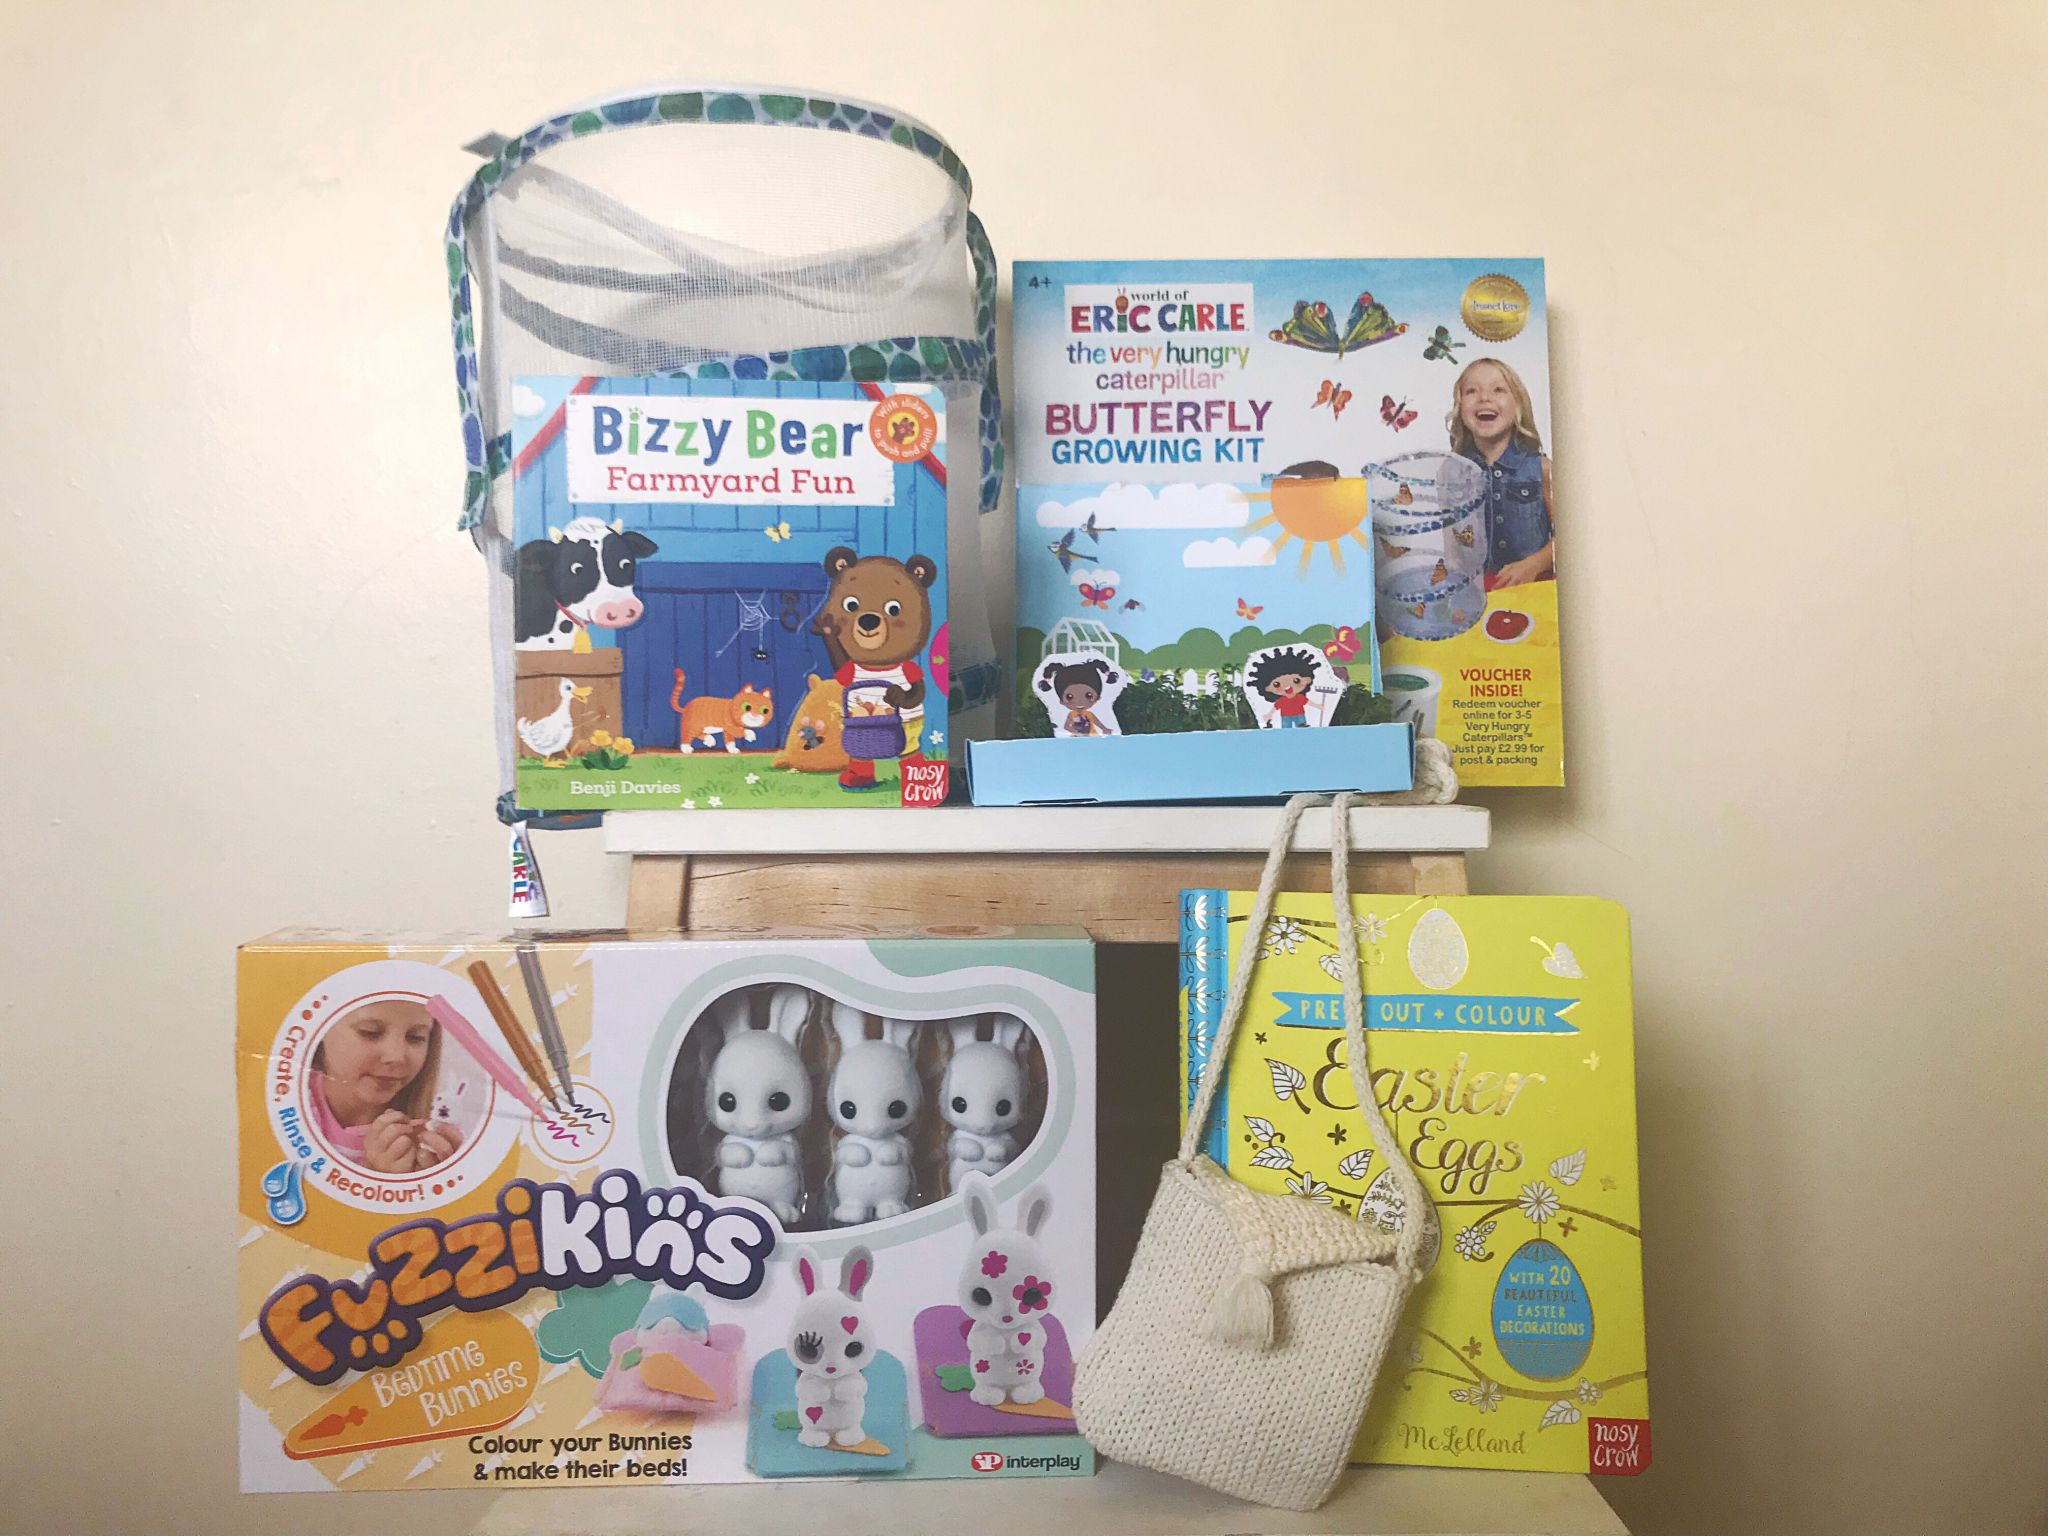 A picture of Kids craft kits and books